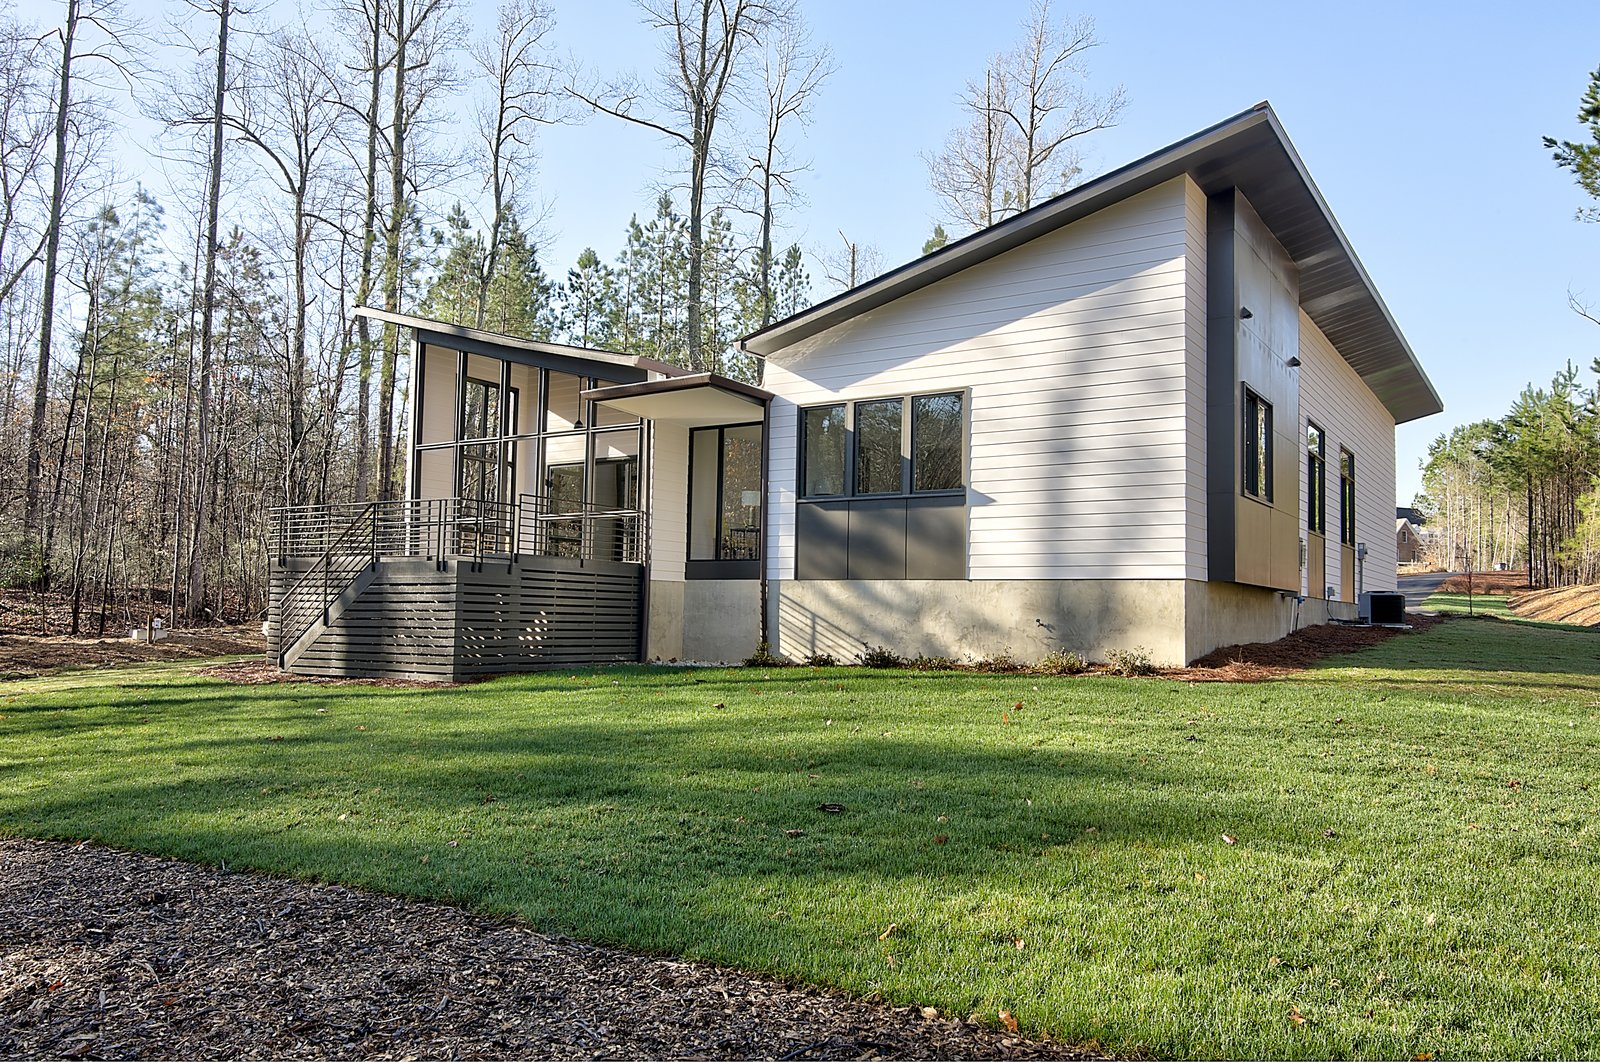 Exterior, Flat RoofLine, Mid-Century Building Type, Wood Siding Material, Shed RoofLine, Shingles Roof Material, House Building Type, and Butterfly RoofLine Exterior Rear  House 23 by Zipper Architecture